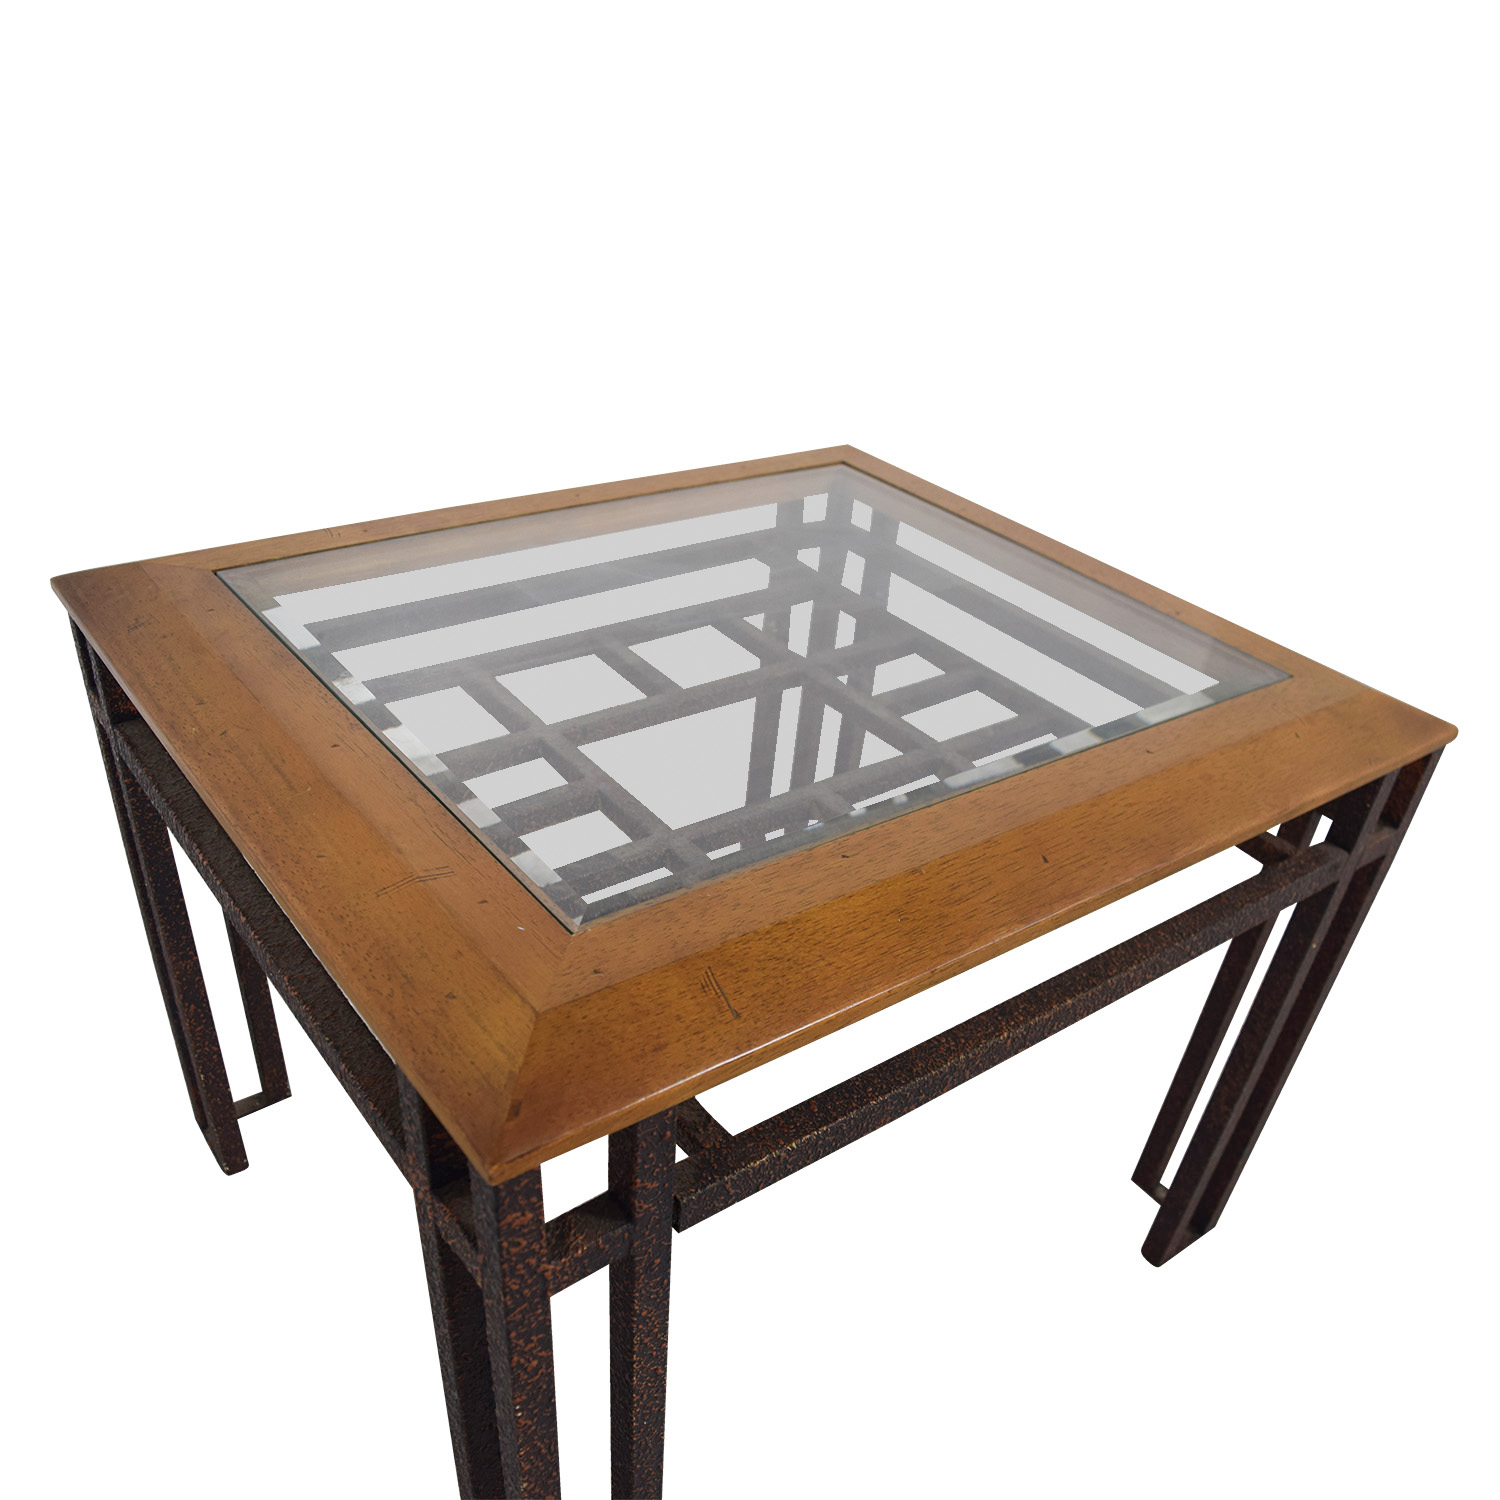 buy Rustic Brass Wood and Glass End Table online